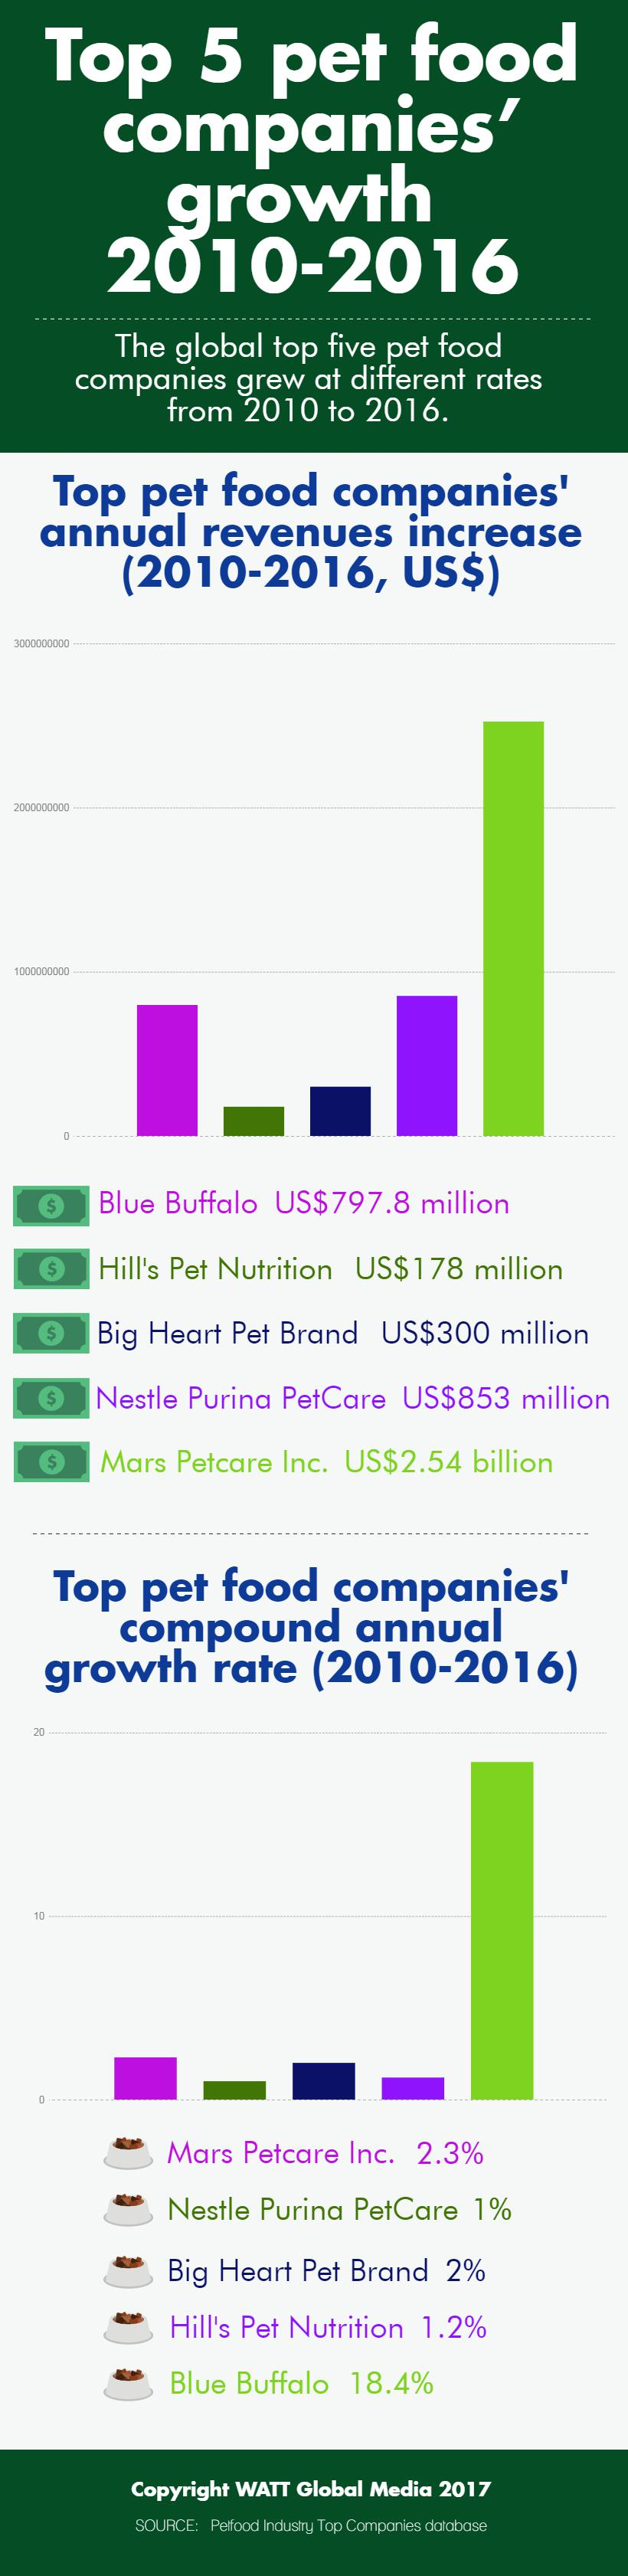 Infographic: top 5 pet food companies' growth 2010-2016